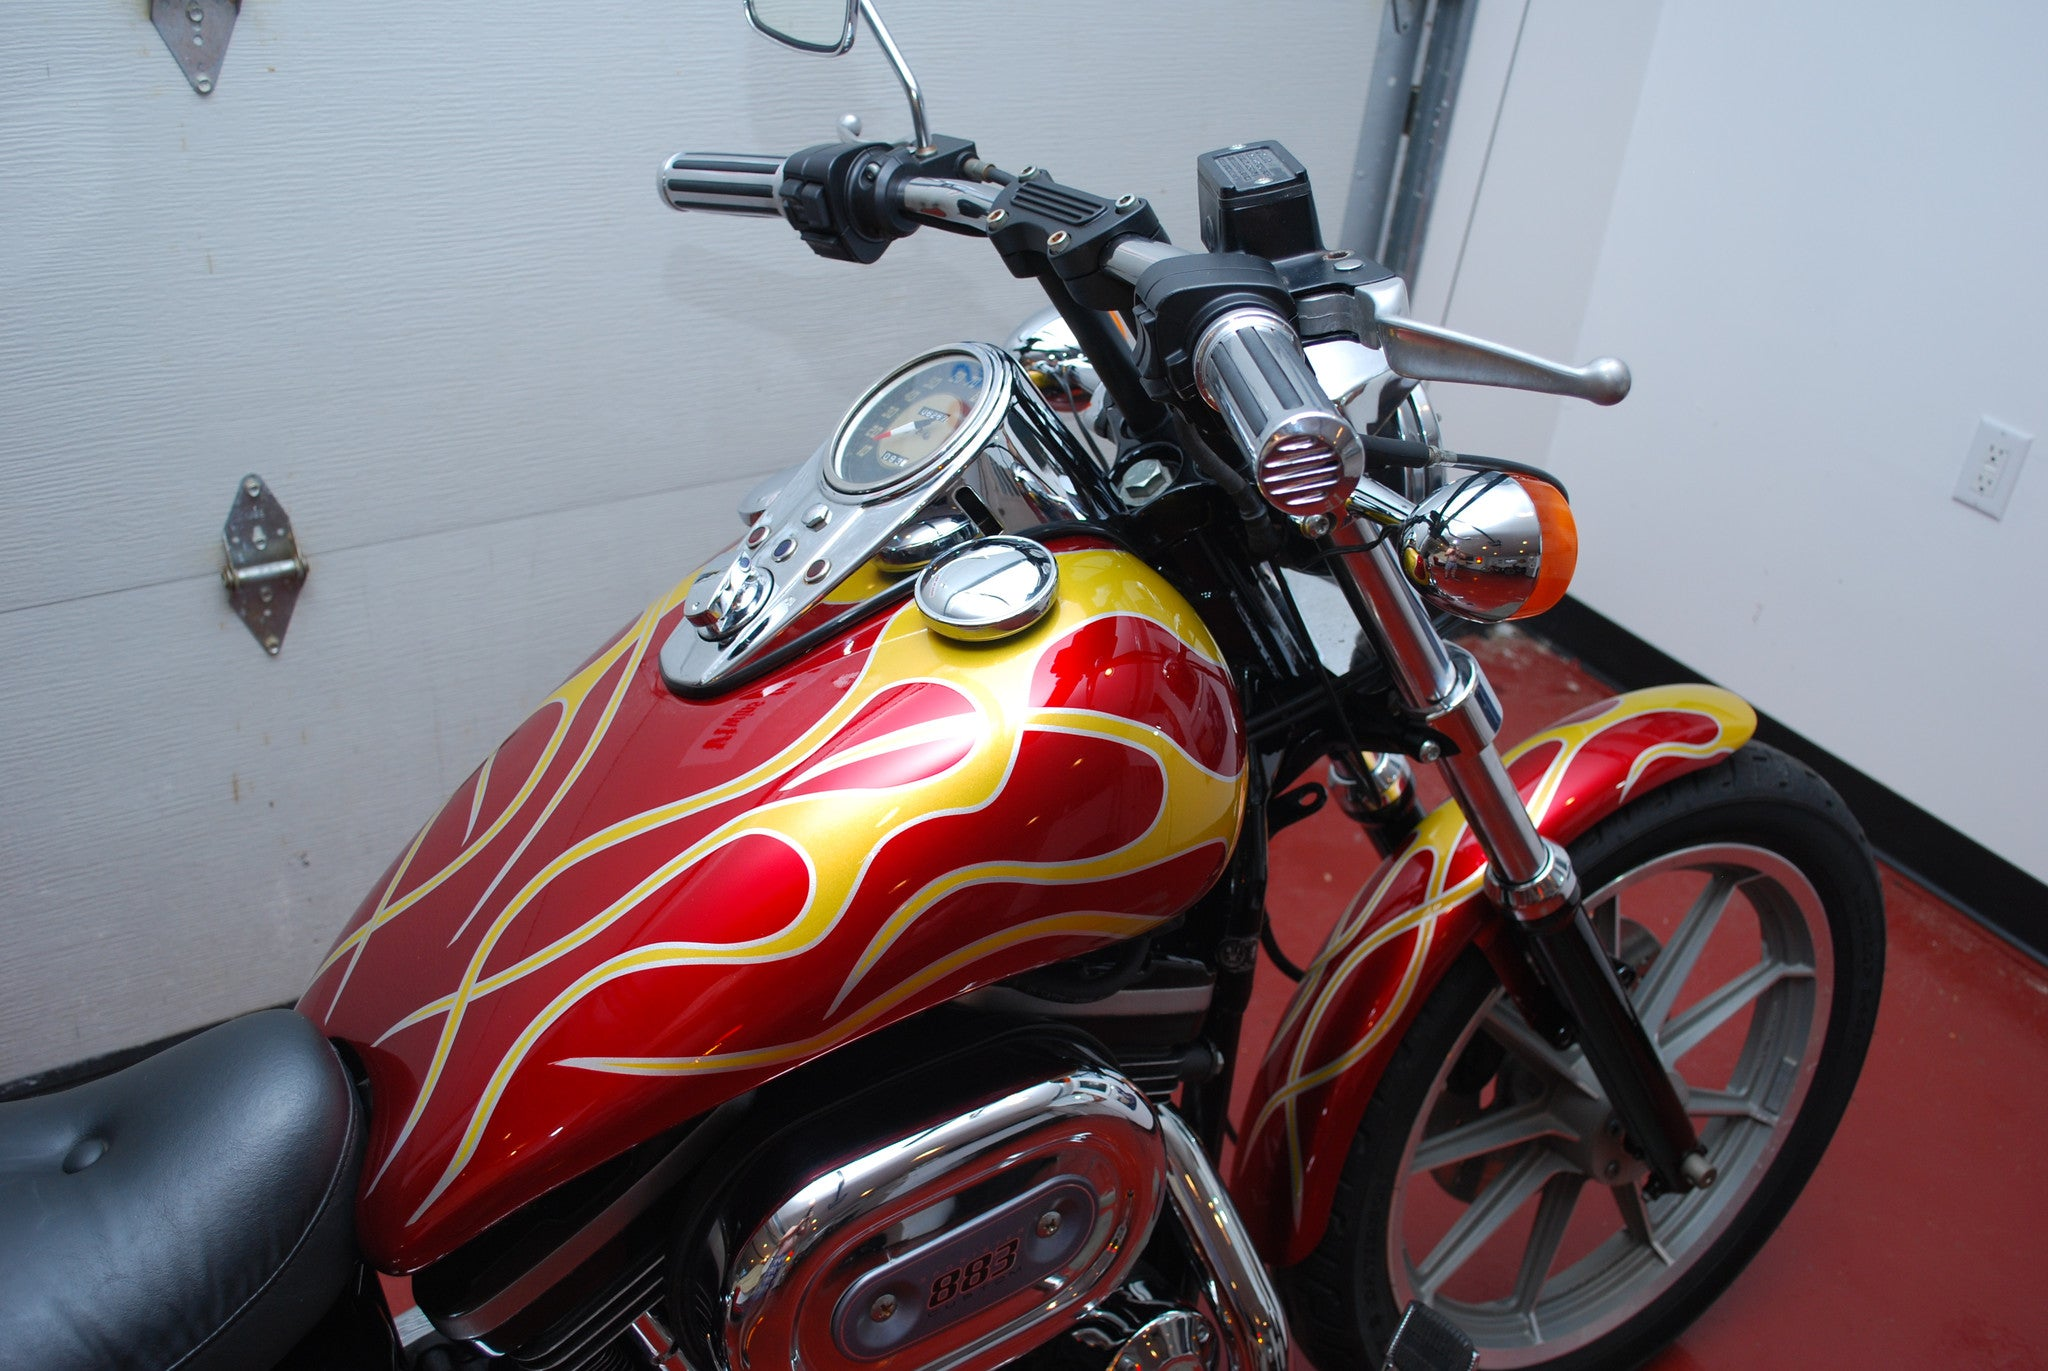 Harley Davidson Sportster 883 with 9K Miles Custom Flame Paint